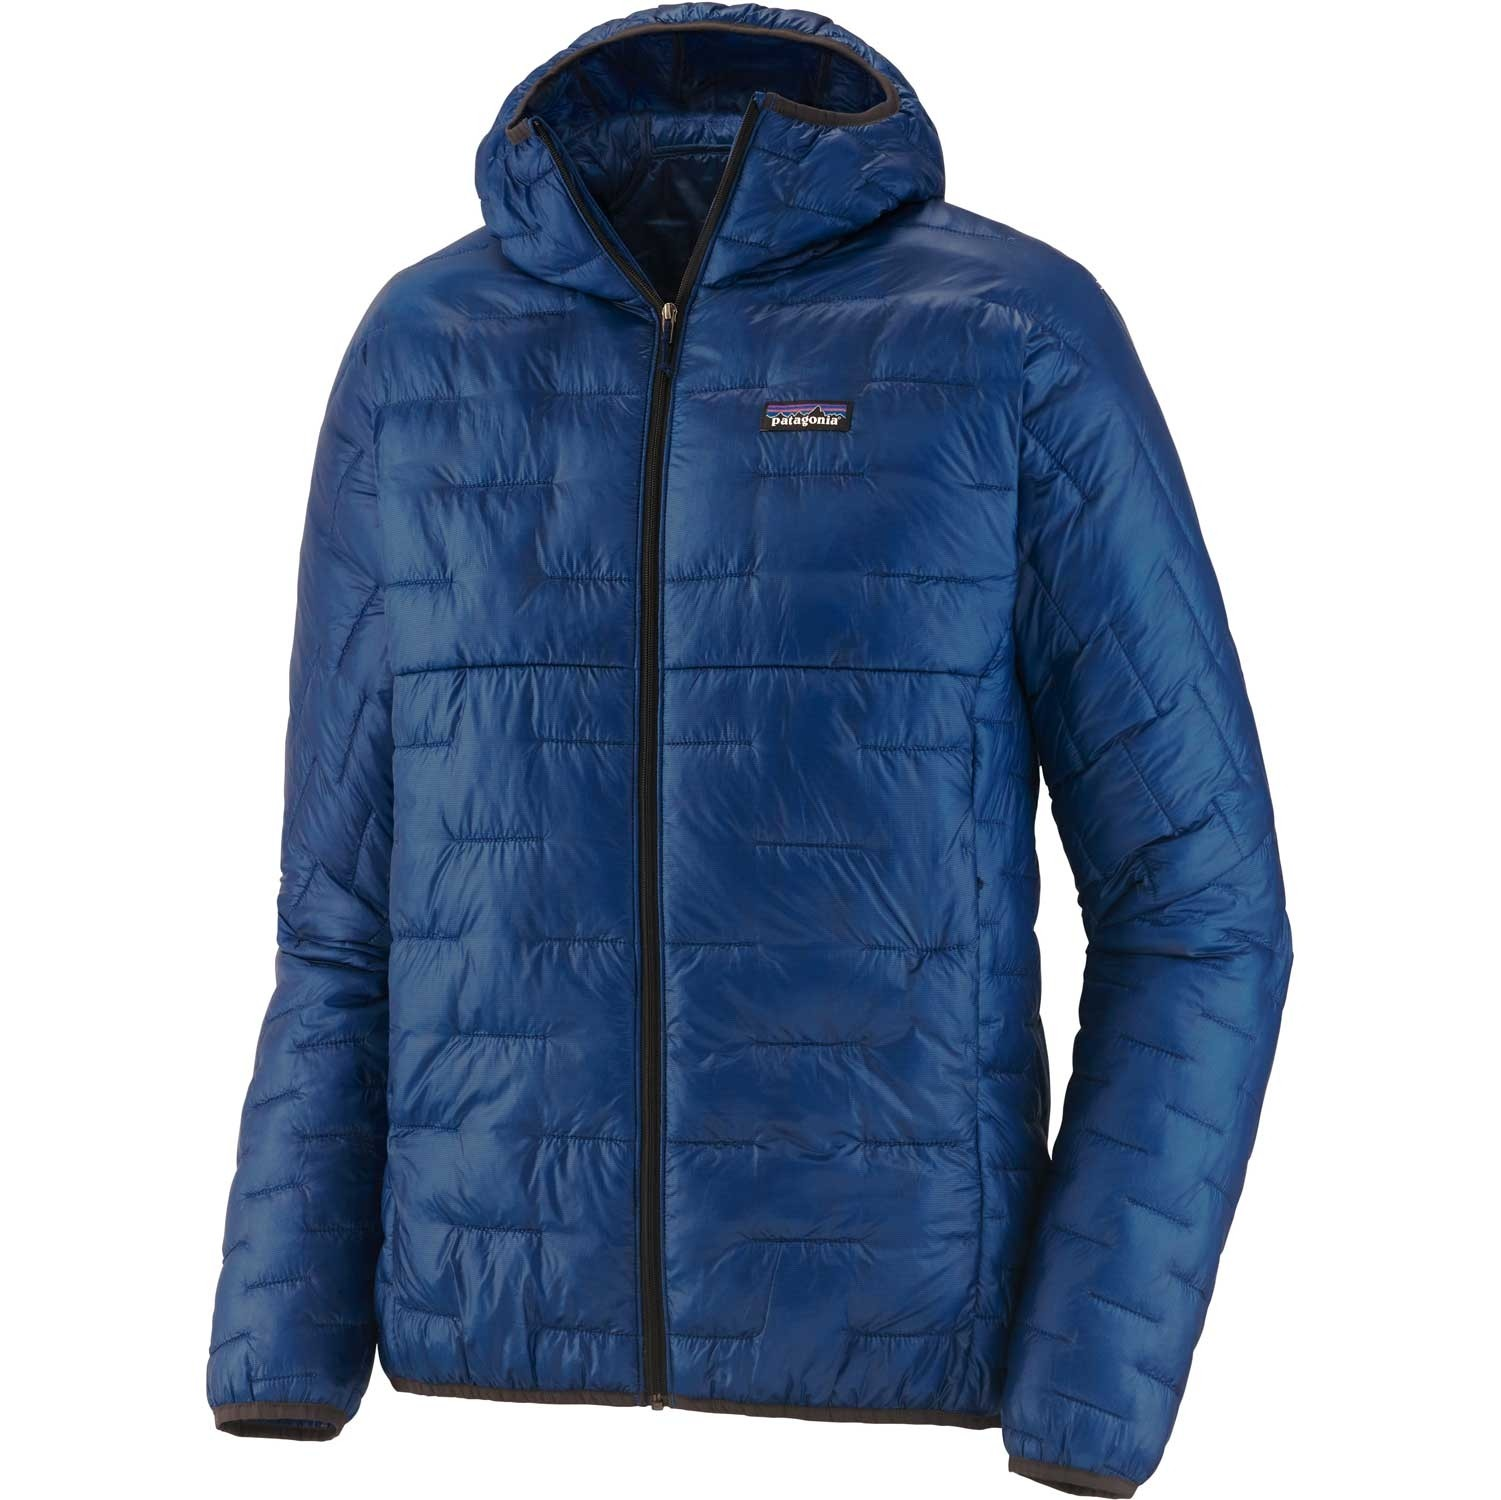 Patagonia Micro Puff Men's Insulated Hoody - Superior Blue w/ Ink Black